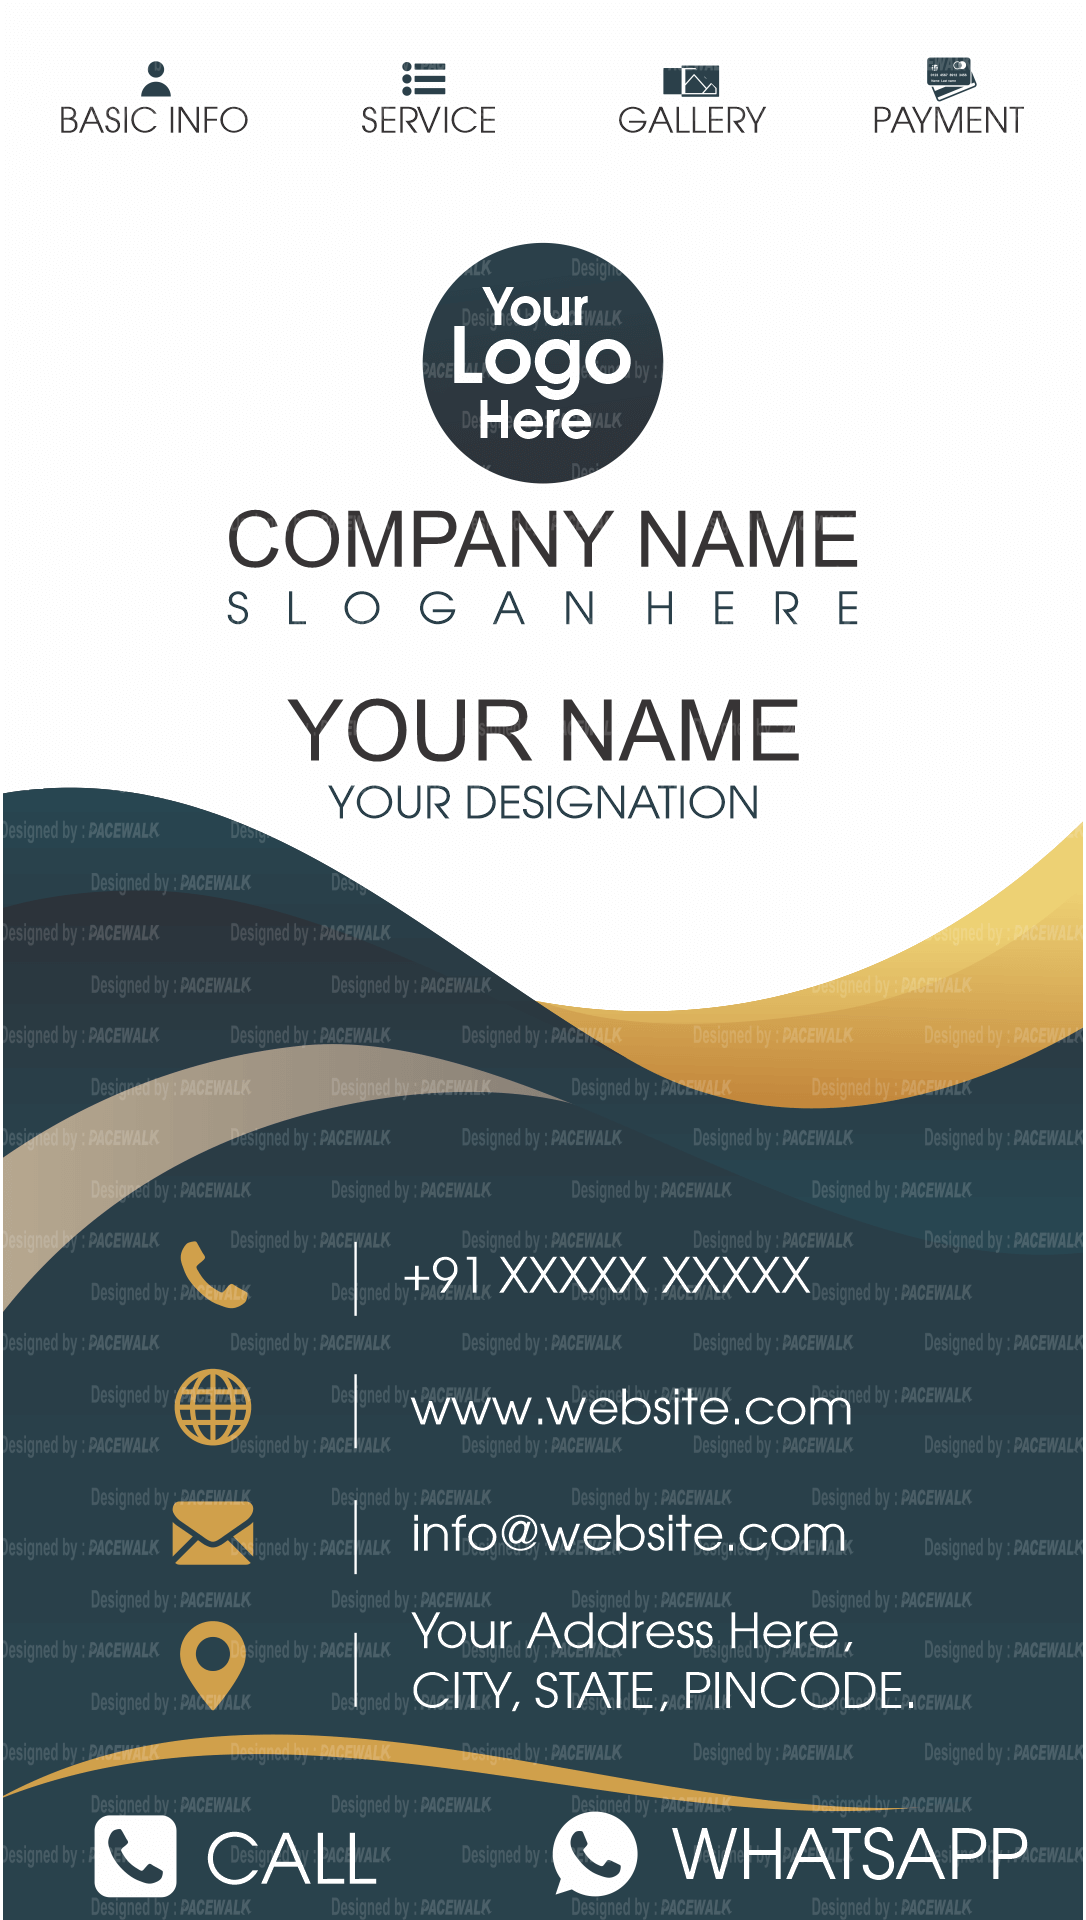 Free Templates For Digital Business Cards Mycarda Digital Business Card Business Card App Business Card Maker